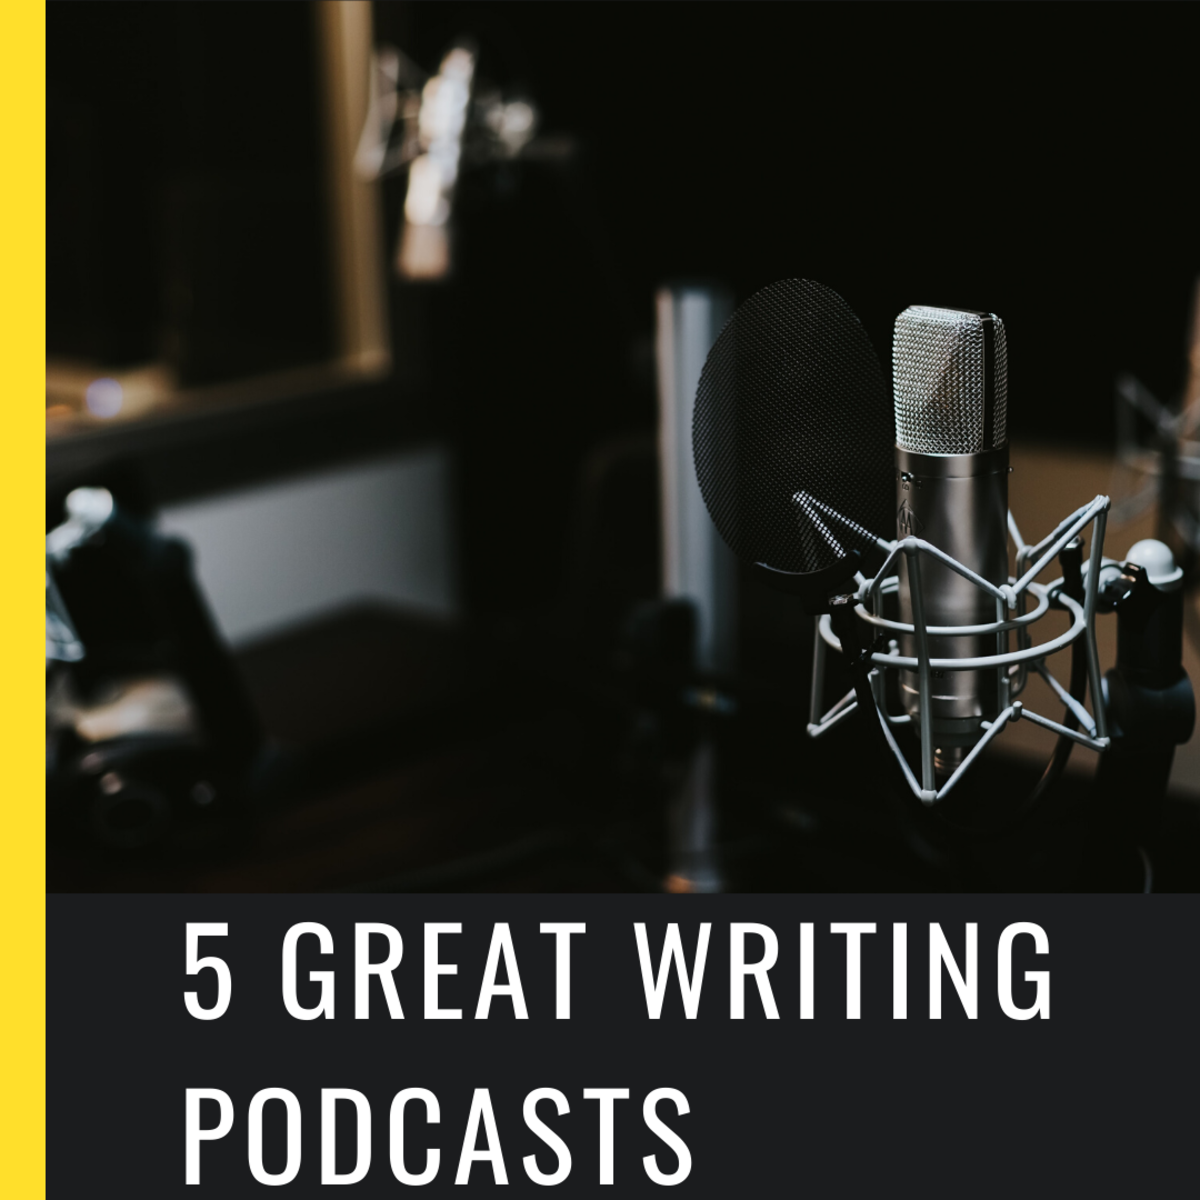 5 Writing Podcasts That Every Aspiring Author Should Listen To